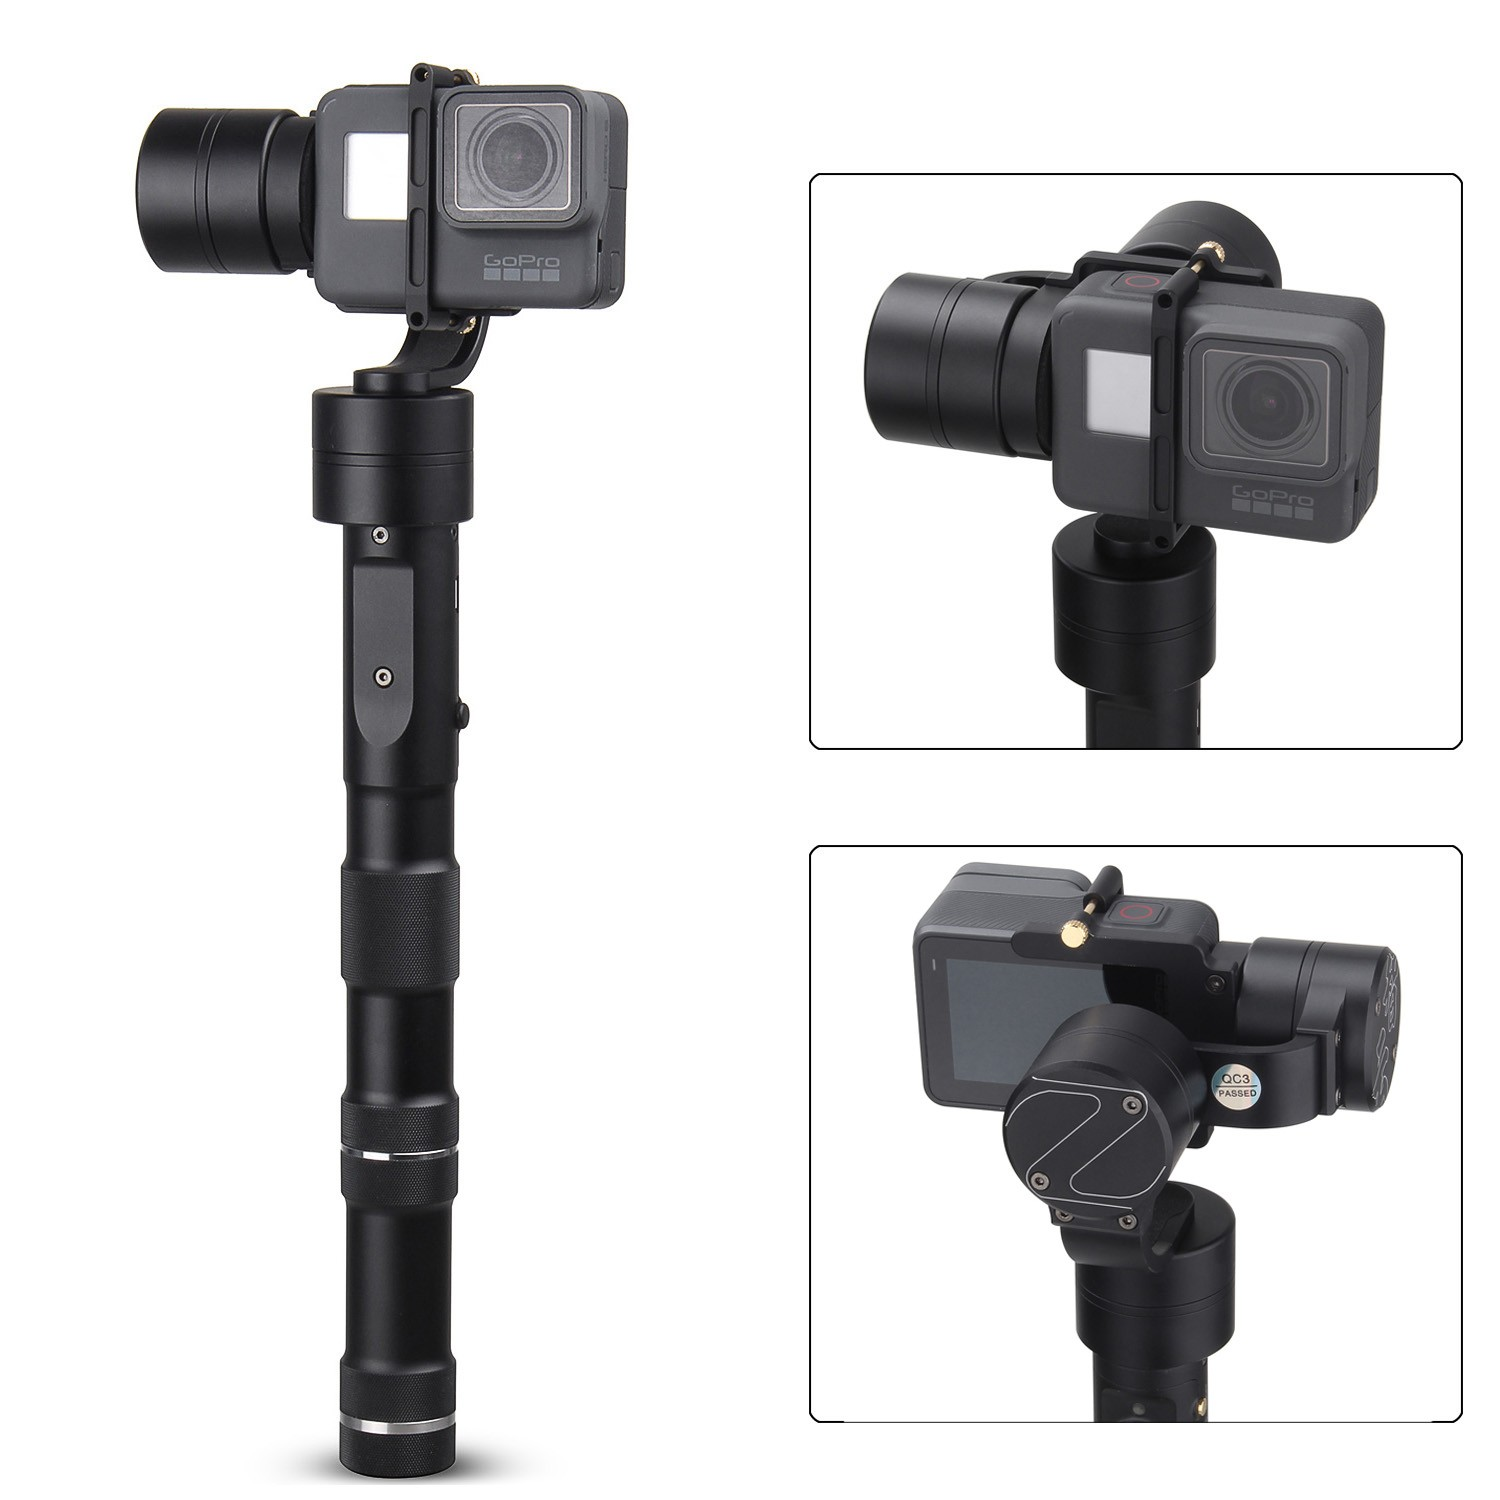 Zhiyun Z1-EVOLUTION 3-Axis Handheld Stabilizer Brushless Gimbal for GoPro Hero 5 zhiyun z1 rider2 3 axle handheld brushless gimbal for skiing